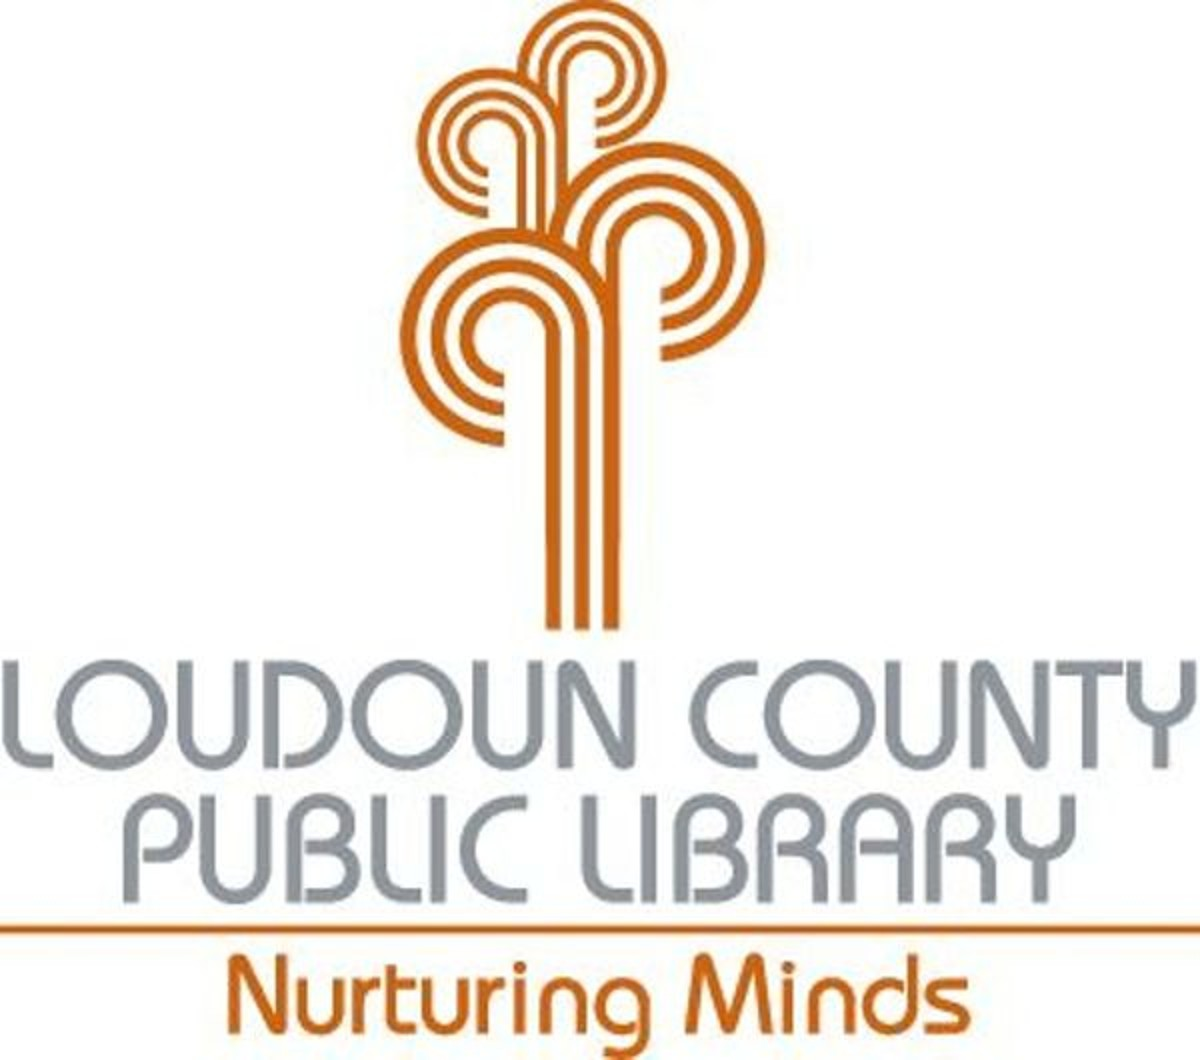 Loudoun County Public Libraries are partnering with the Loudoun Arts Council to offer artists' residencies